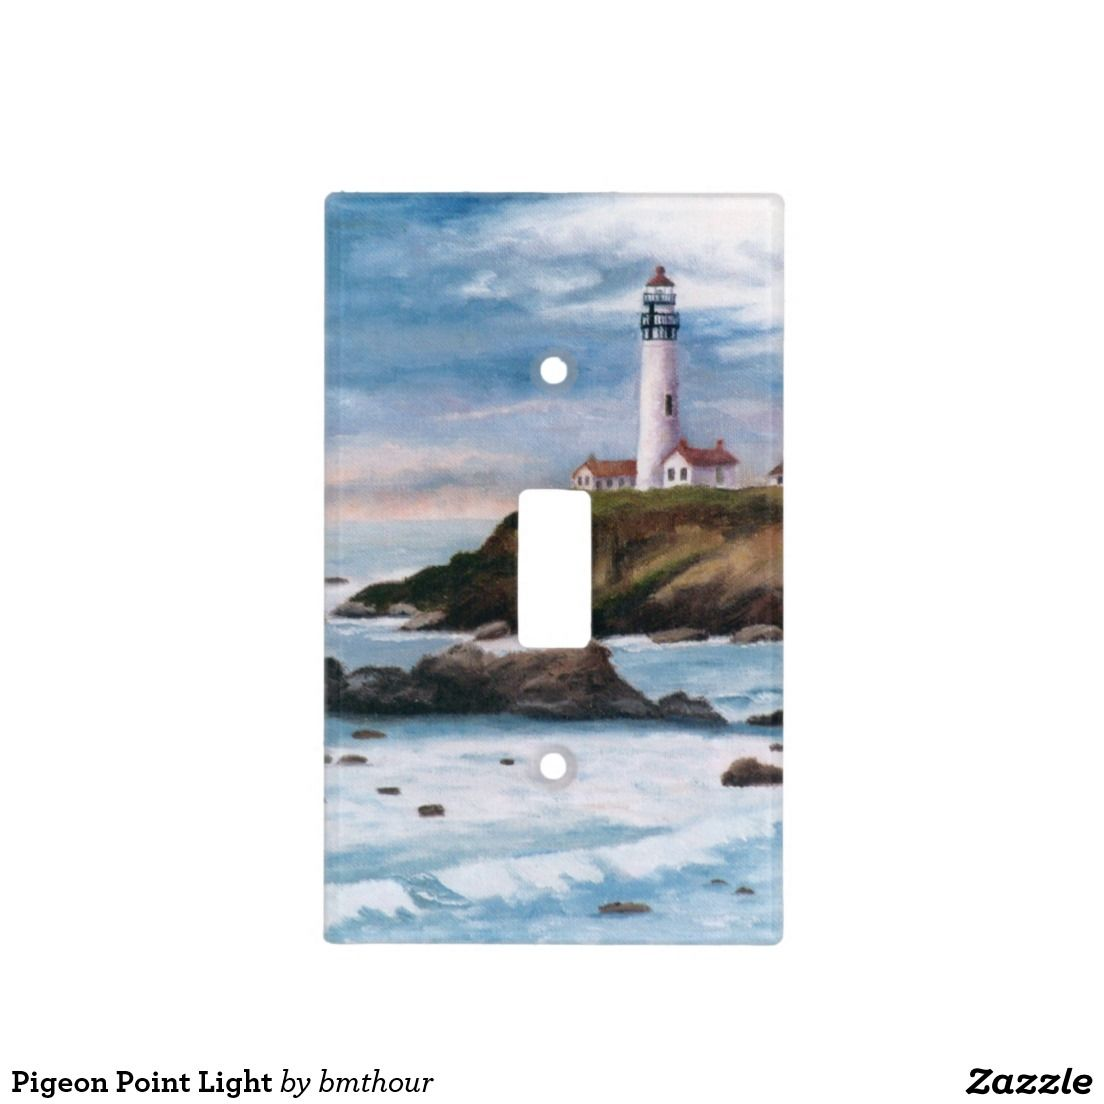 Pigeon Point Light Light Switch Cover https://www.zazzle.com/pigeon_point_light_light_switch_cover-256900329140412424?CMPN=shareicon&lang=en&social=true&view=113641549057554304&rf=238394130656528072